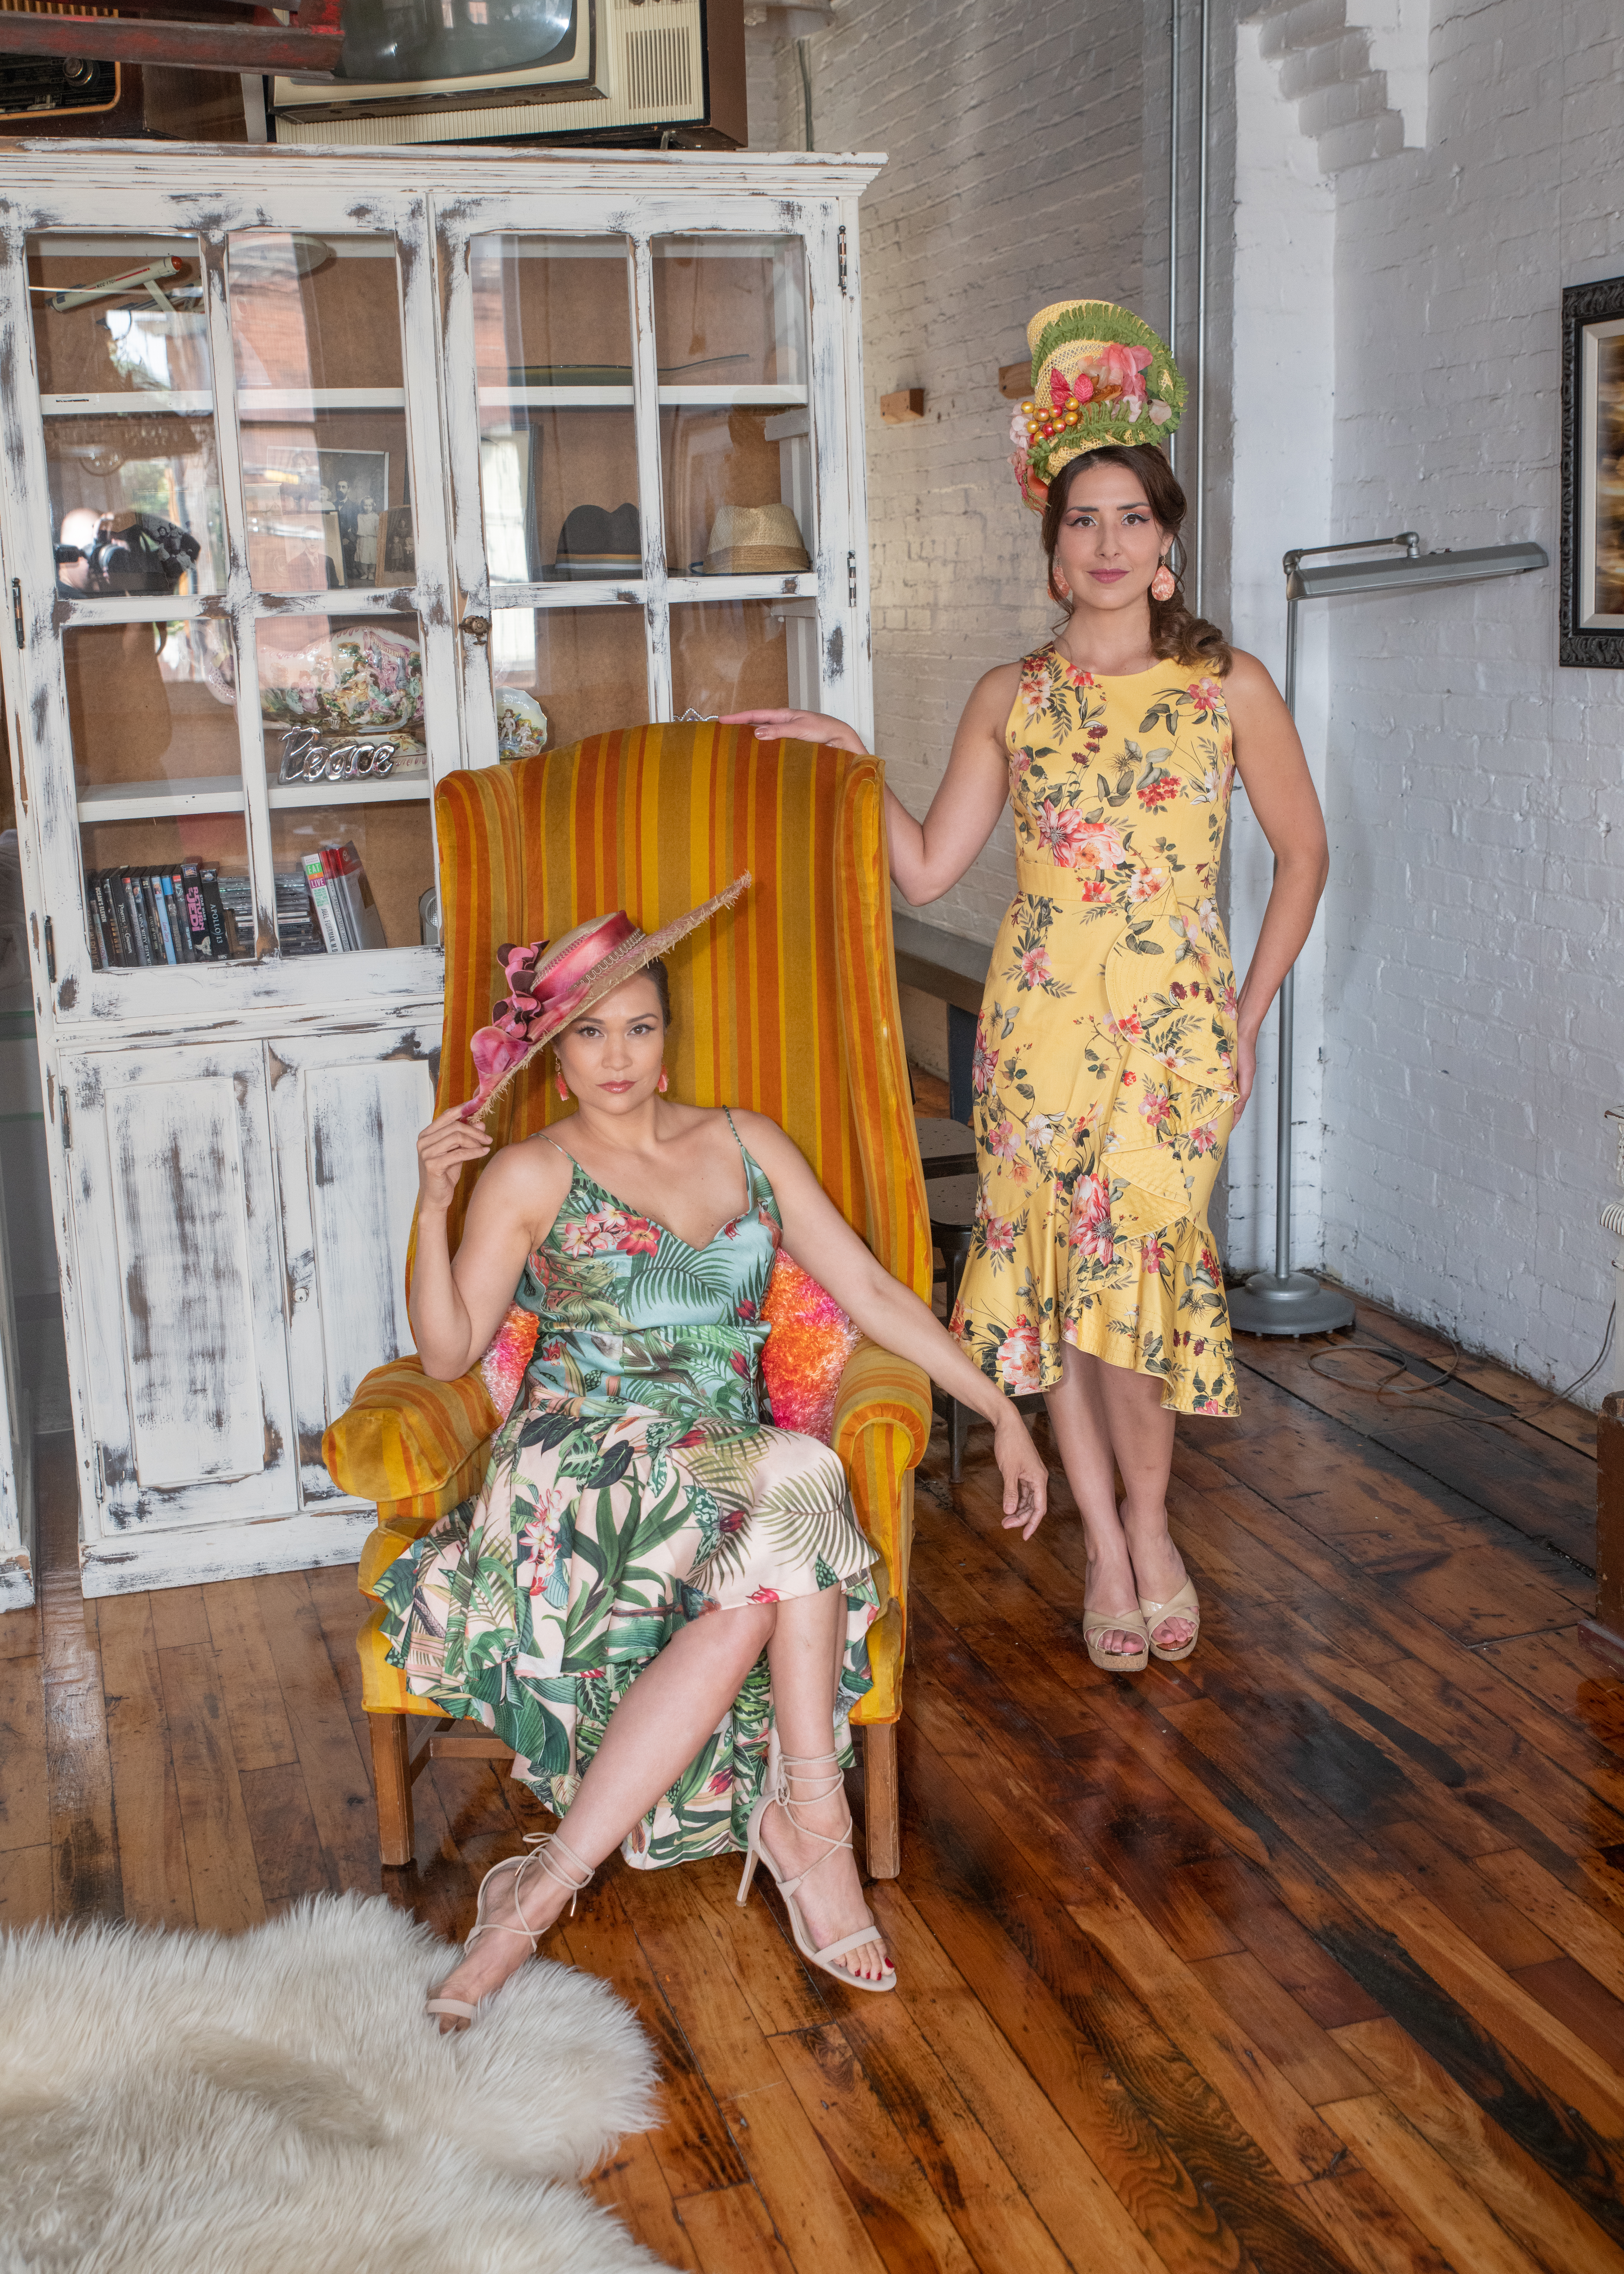 Models Lani Dee & Michelle Senko clad in modern dresses with a vintage tropical vibe